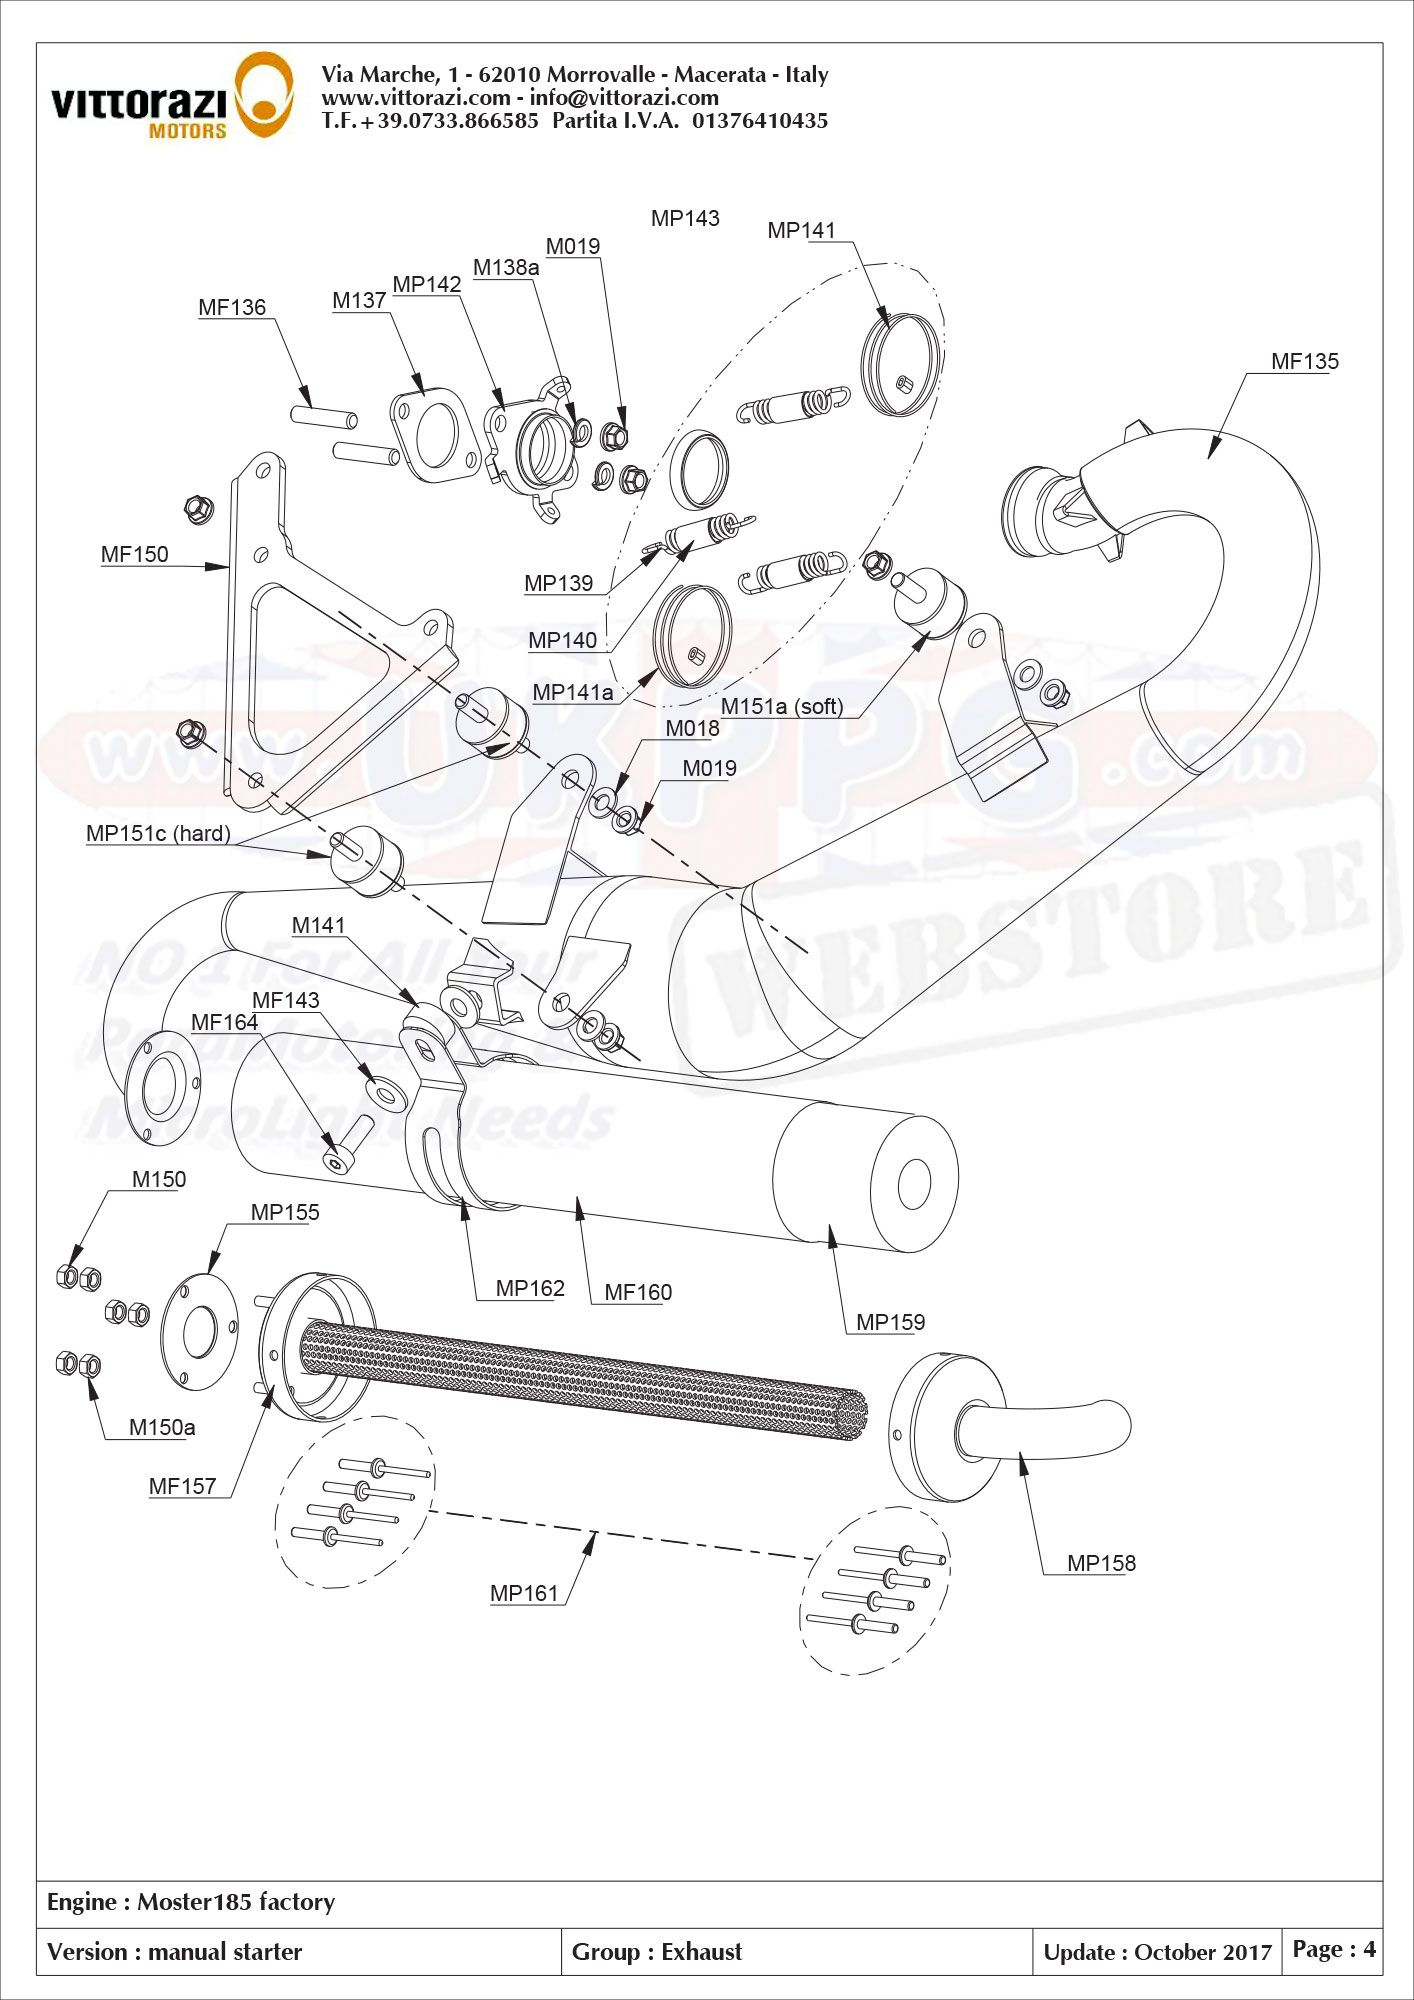 Moster 185 Factory Parts